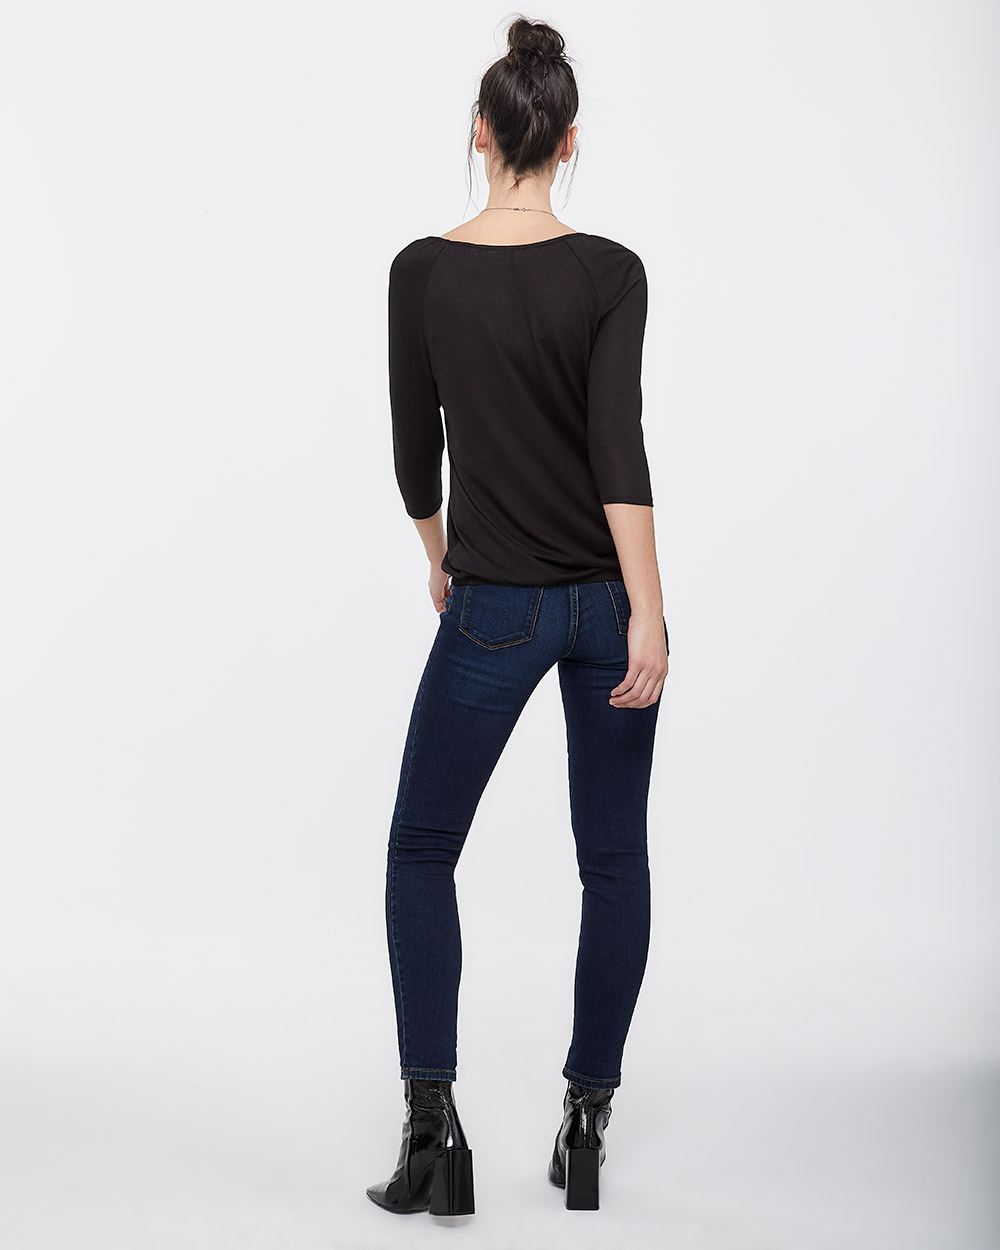 3/4 Sleeve Top with Bubble Hem